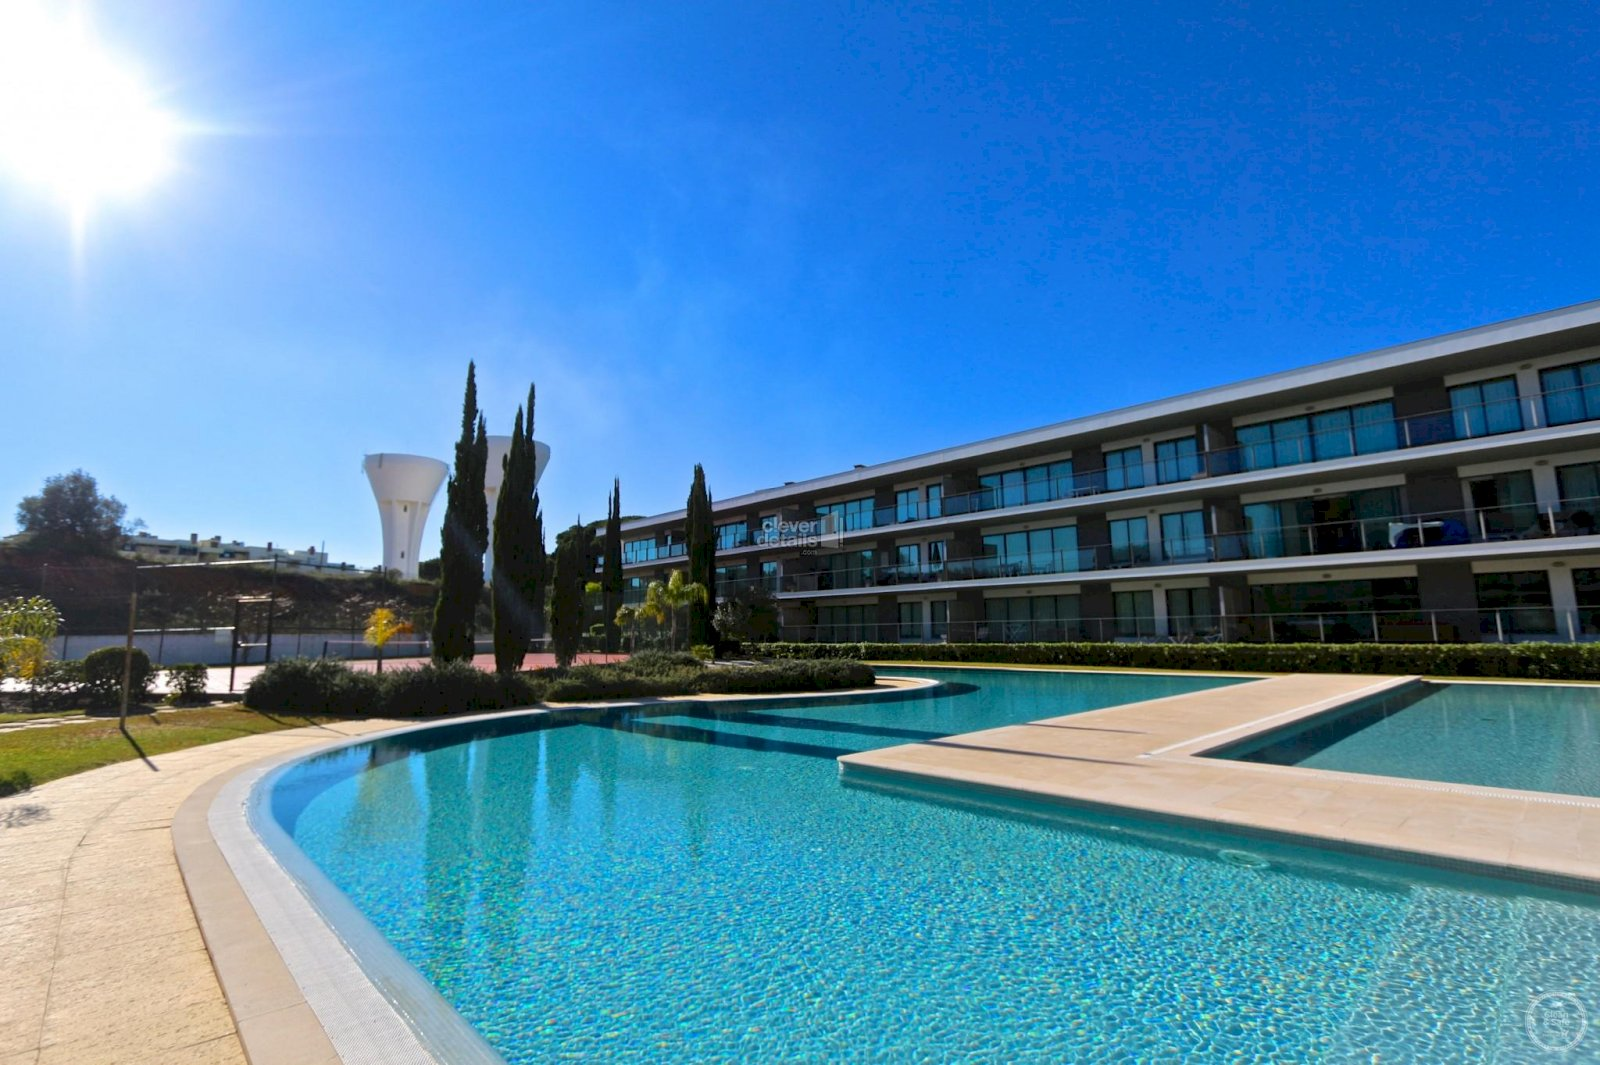 Cheap holiday apartments Vilamoura, close to the golf courses, with large garden and pool.